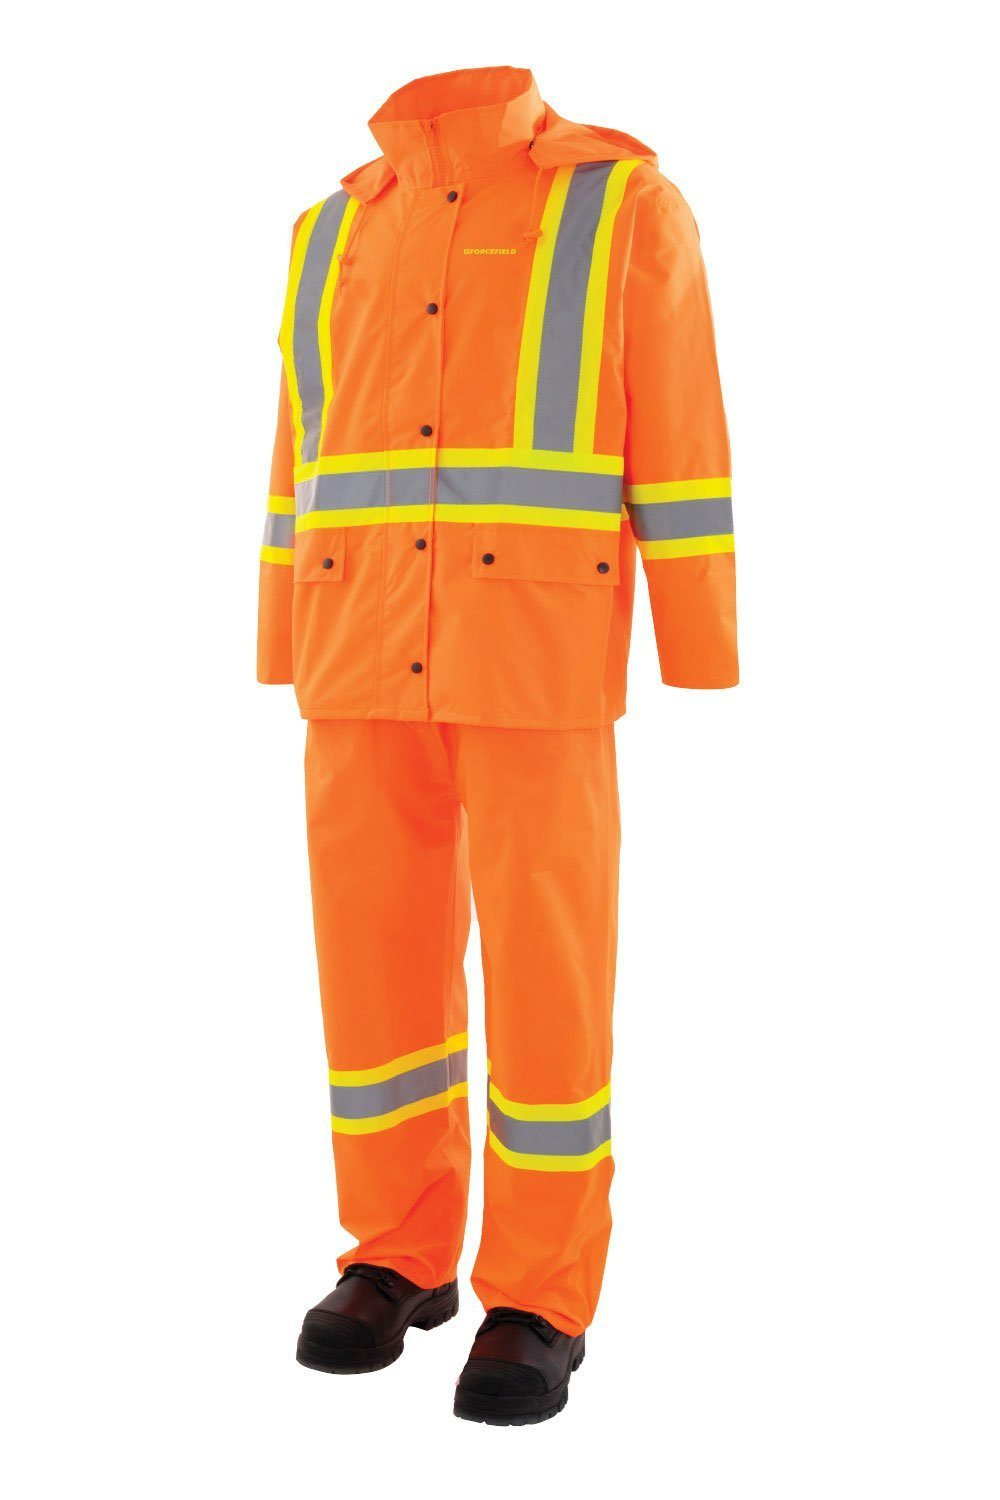 Forcefield - Safety Rain Suit - 023-HVRSS - Orange